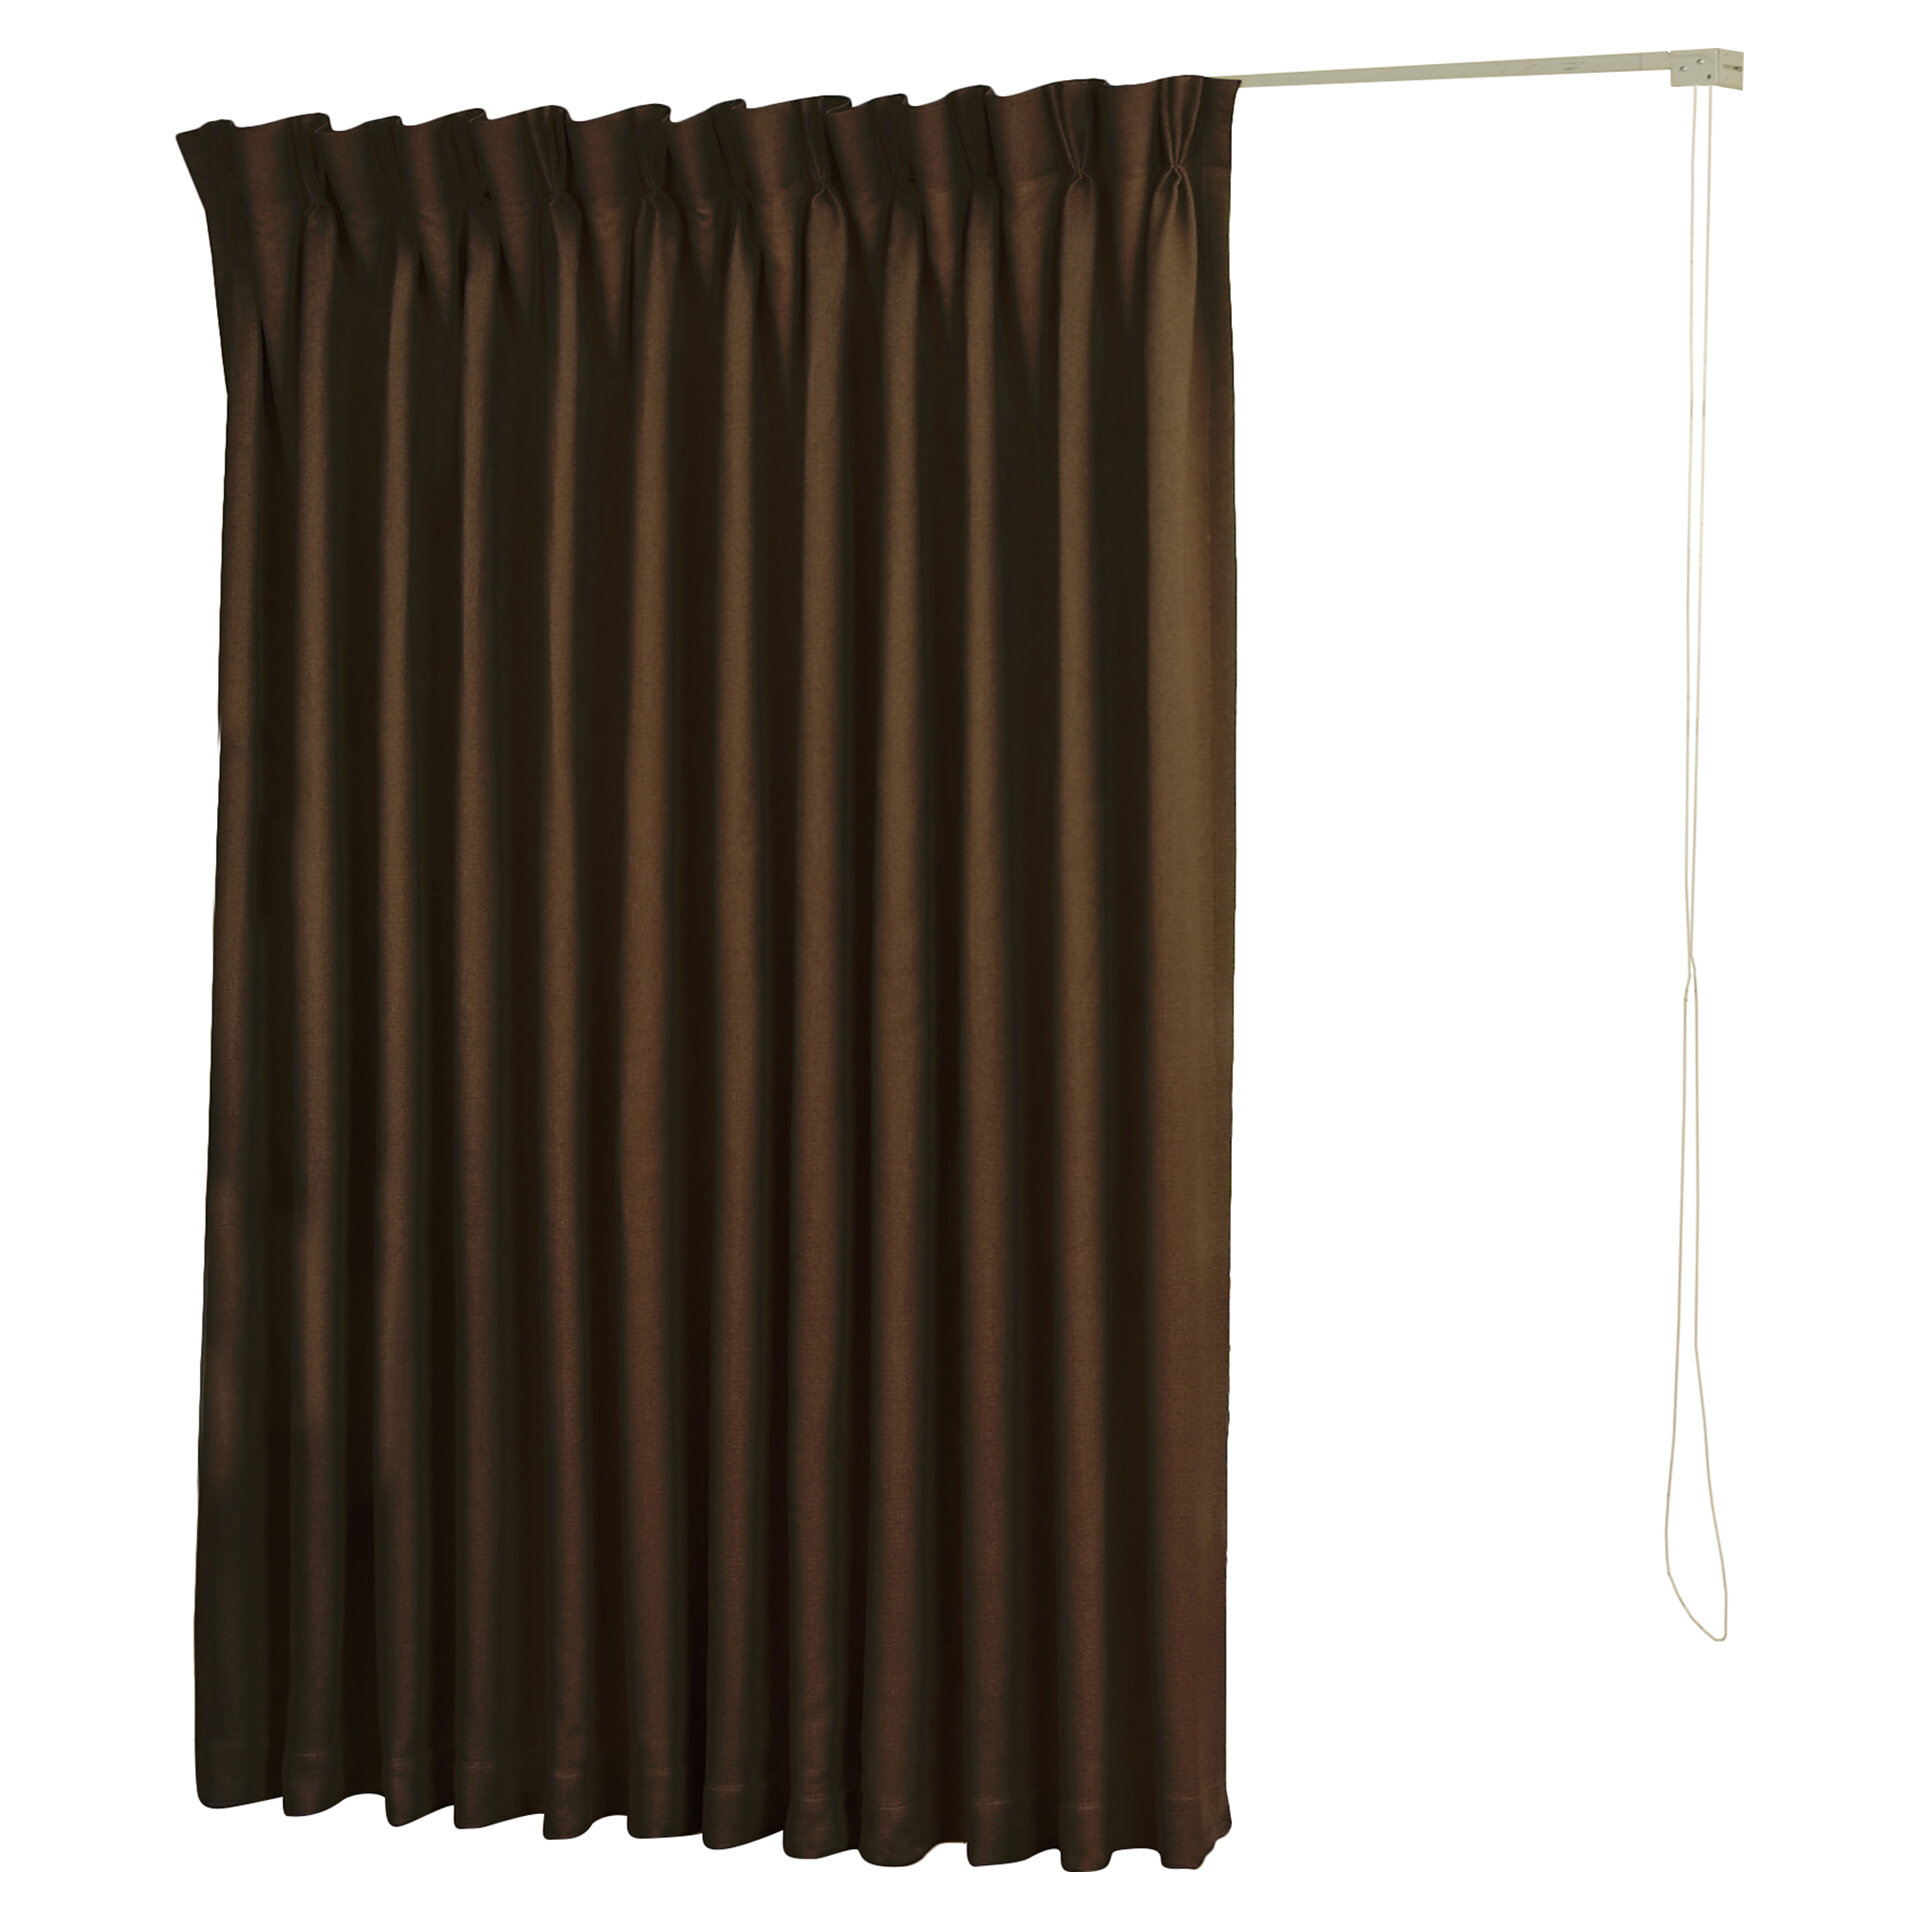 ikea contrast with contras pleated pompom banding customized trim pleats edge pinch ritva customize band pom and curtains